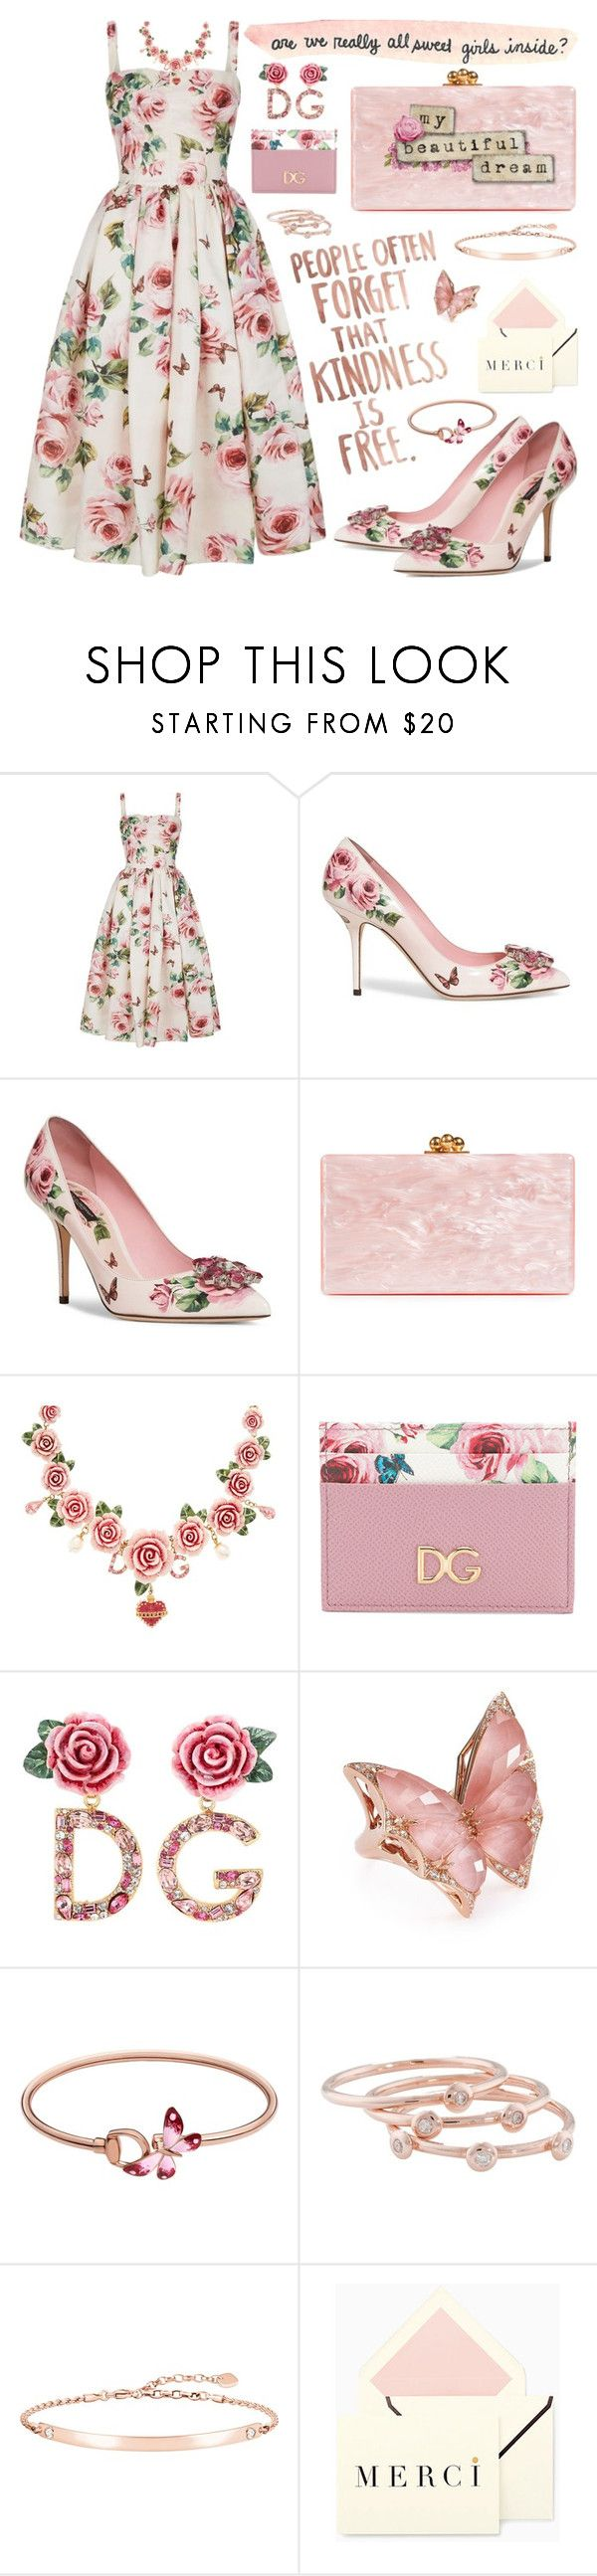 """""""Kindness is Free"""" by shannon-brennan ❤ liked on Polyvore featuring Dolce&Gabbana, Edie Parker, Stephen Webster, Gucci, London Road and Thomas Sabo"""